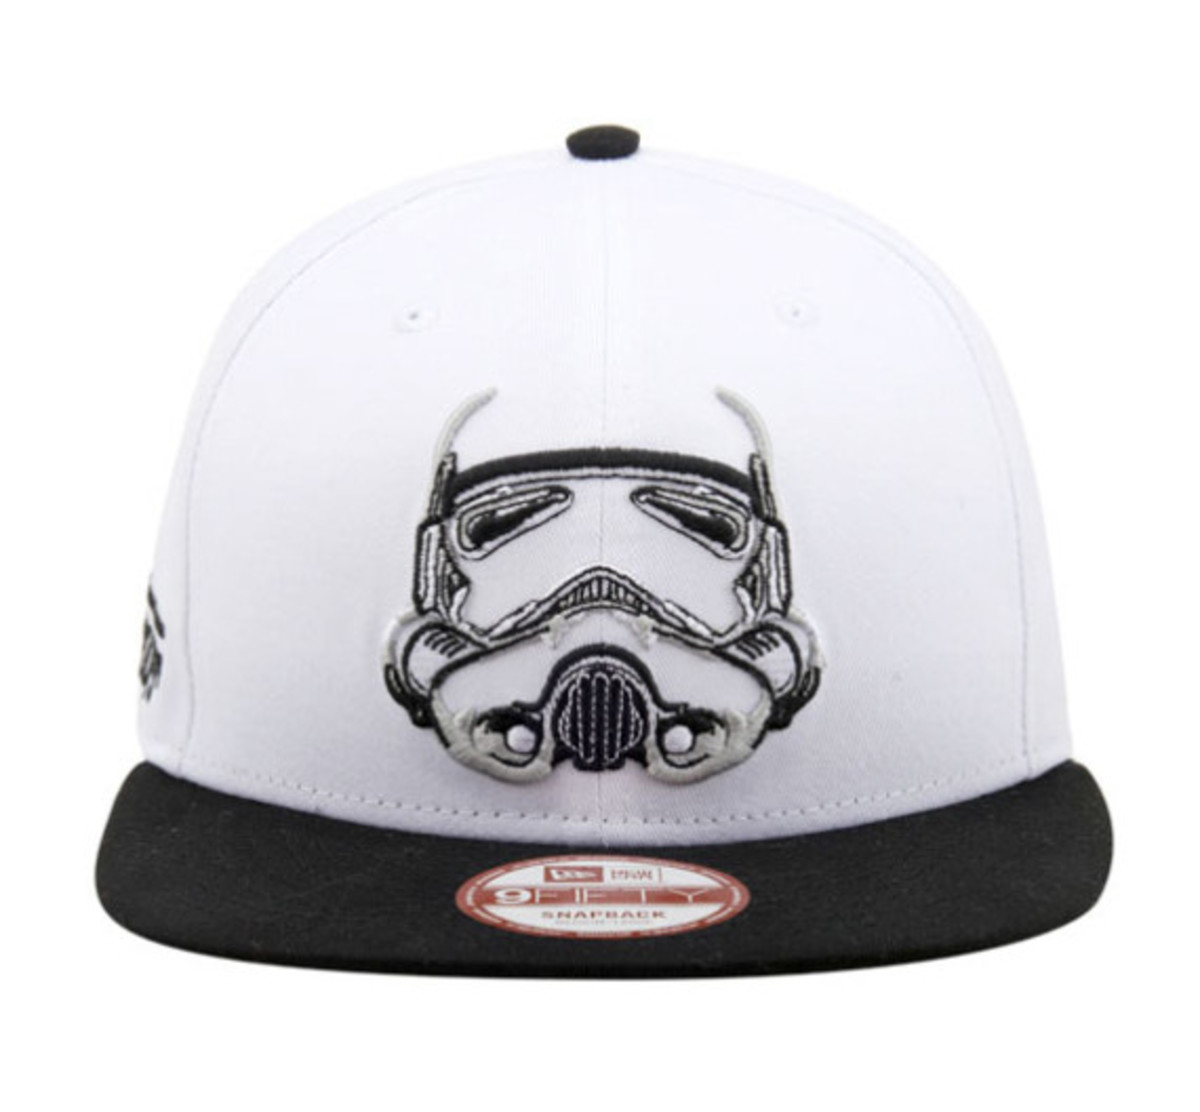 Star Wars x New Era 9FIFTY Snapback Cap Collection - 1